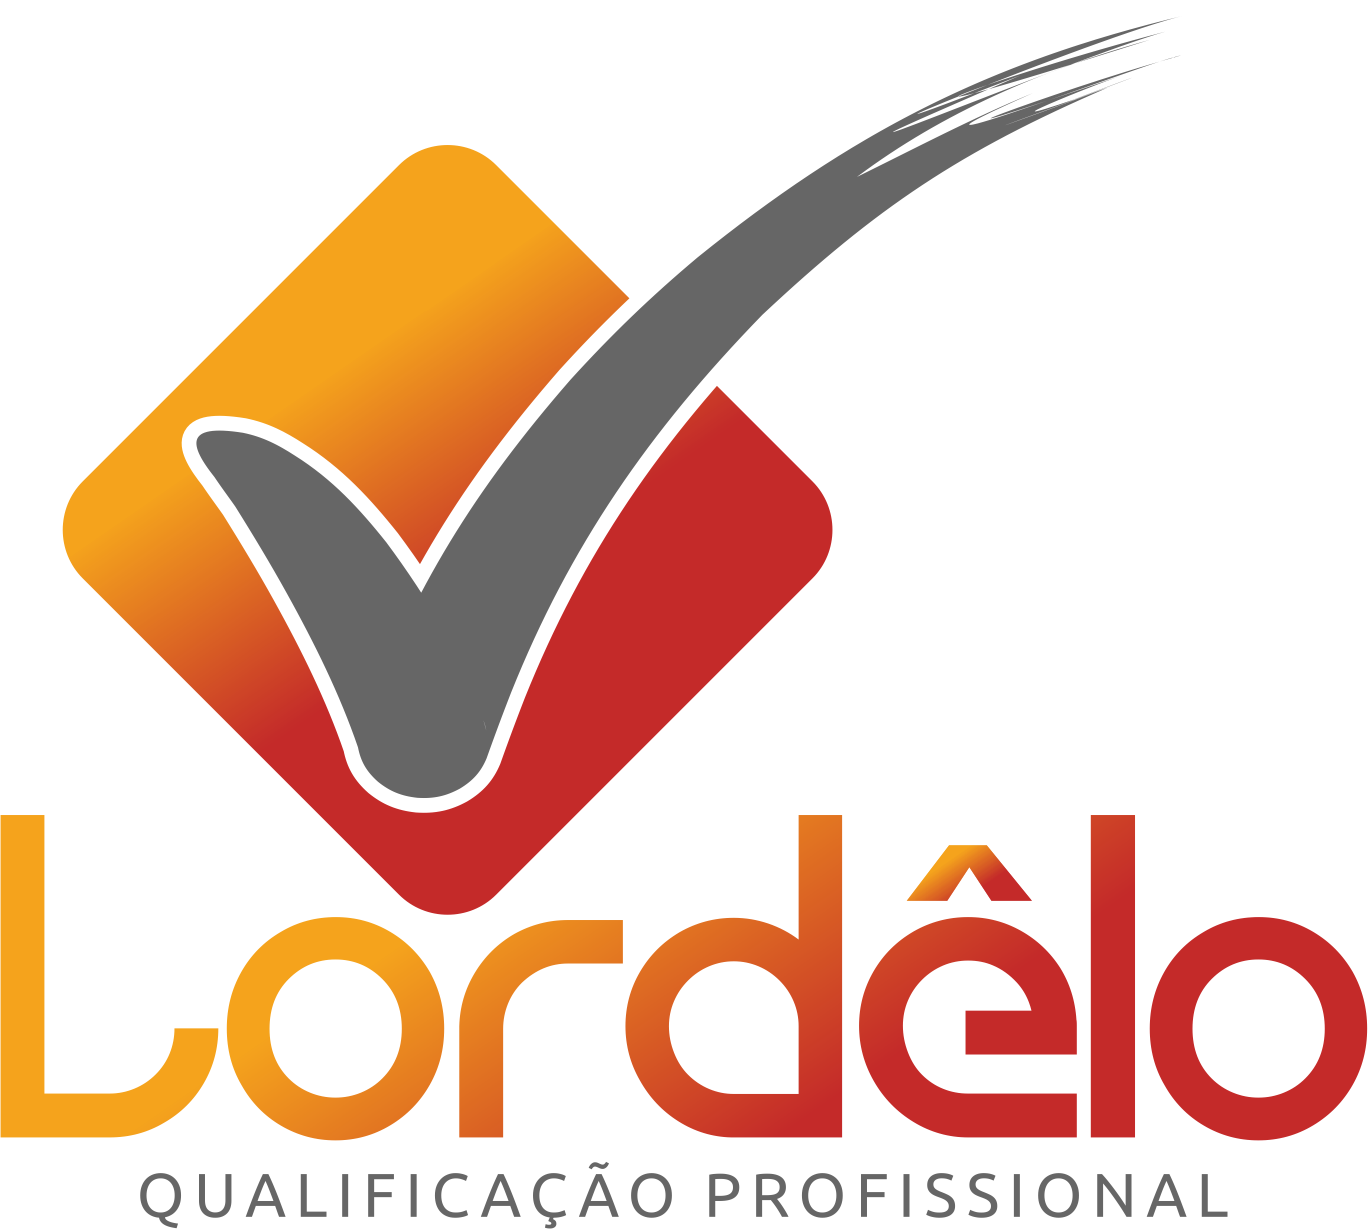 Instituto Patrícia Lordêlo Online